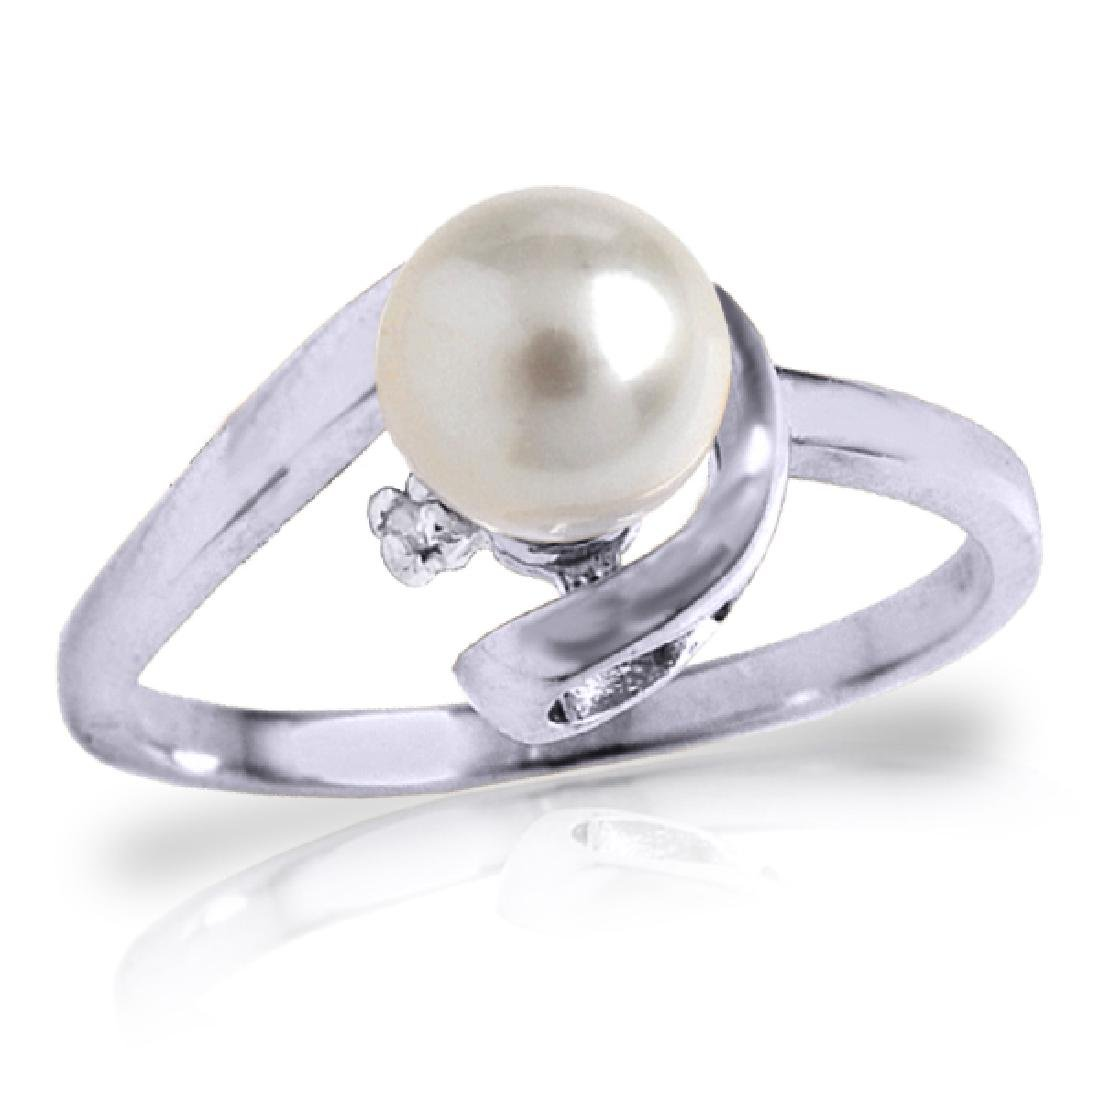 Genuine 1.01 ctw Pearl & Diamond Ring Jewelry 14KT